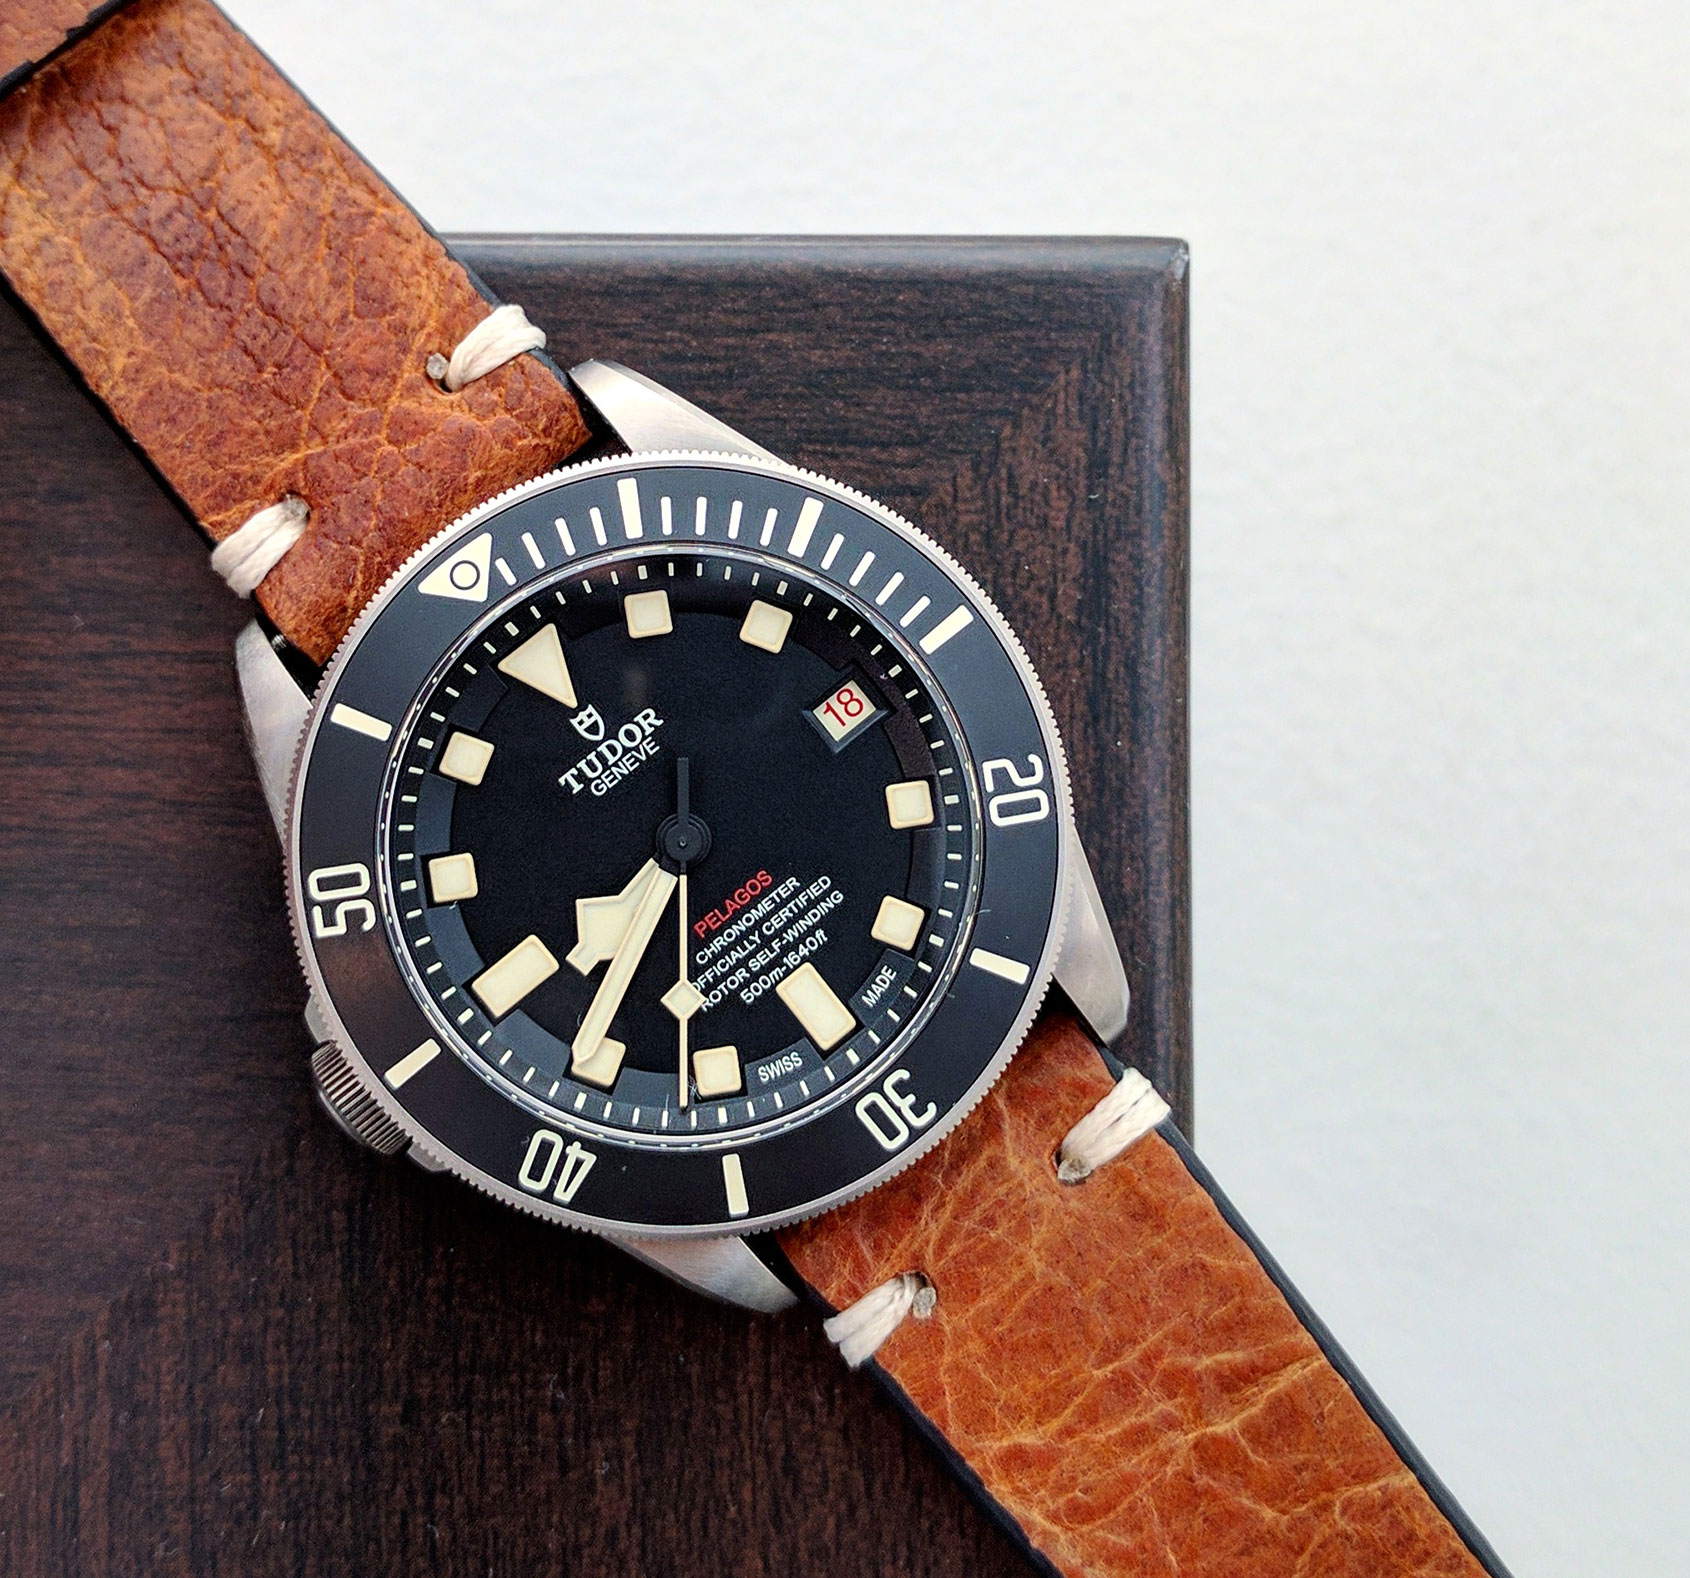 MY 6 MONTHS WITH: The Tudor Pelagos LHD